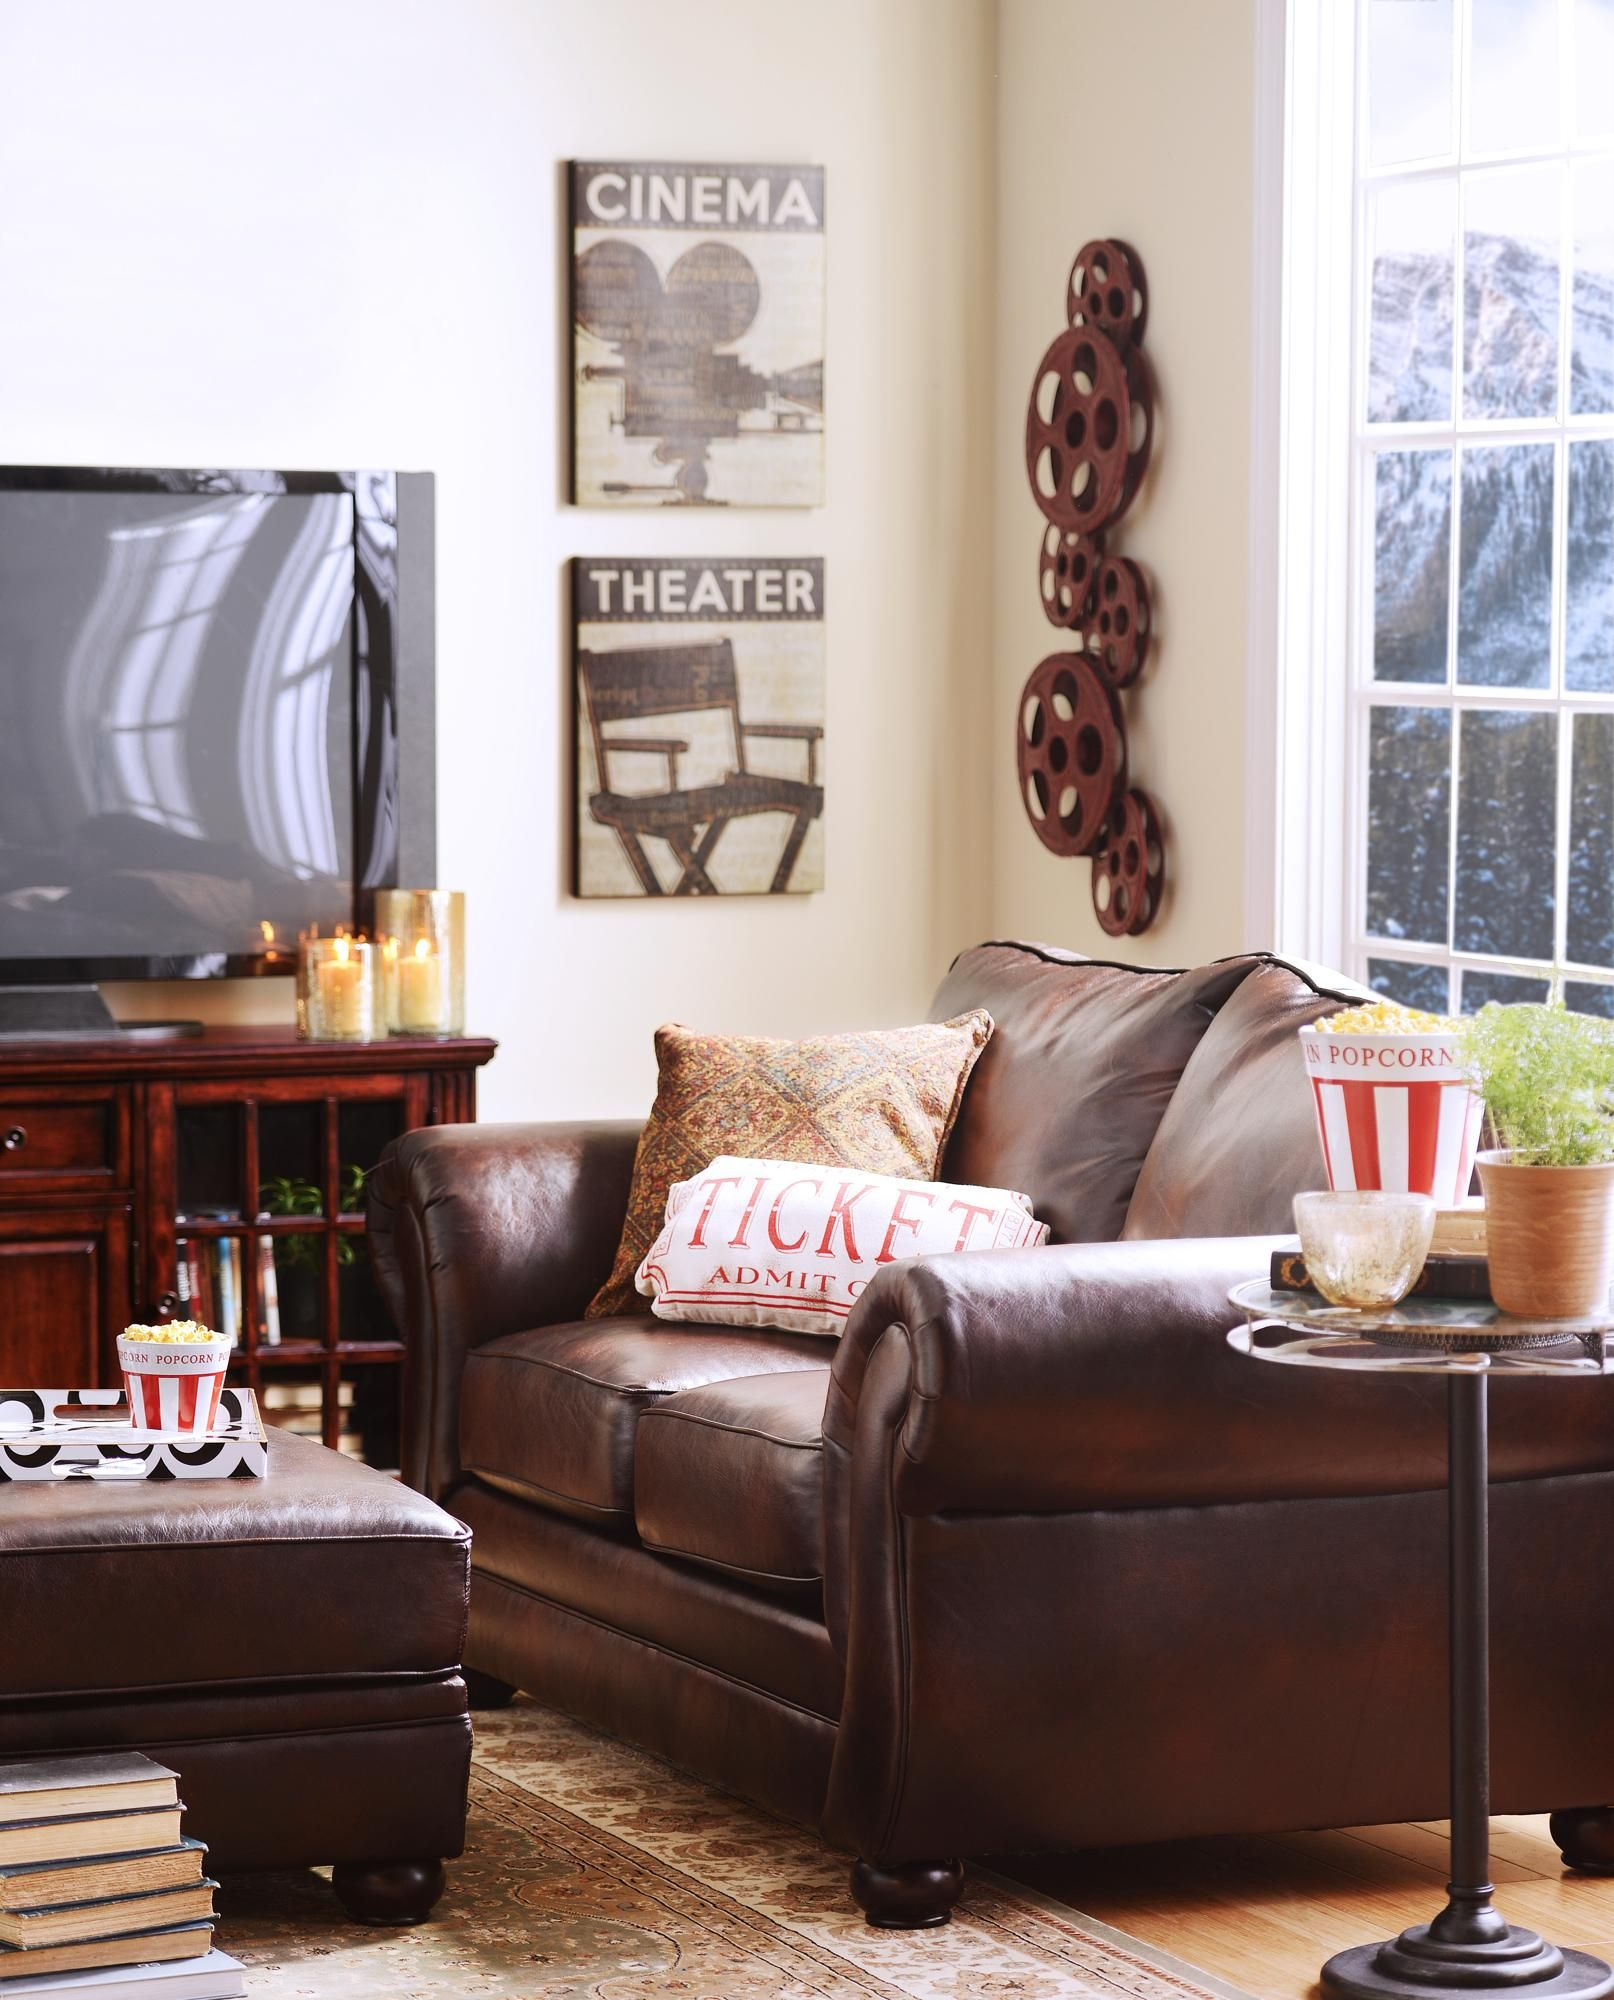 Bring The Theater Experience Home! Get The Most Out Of